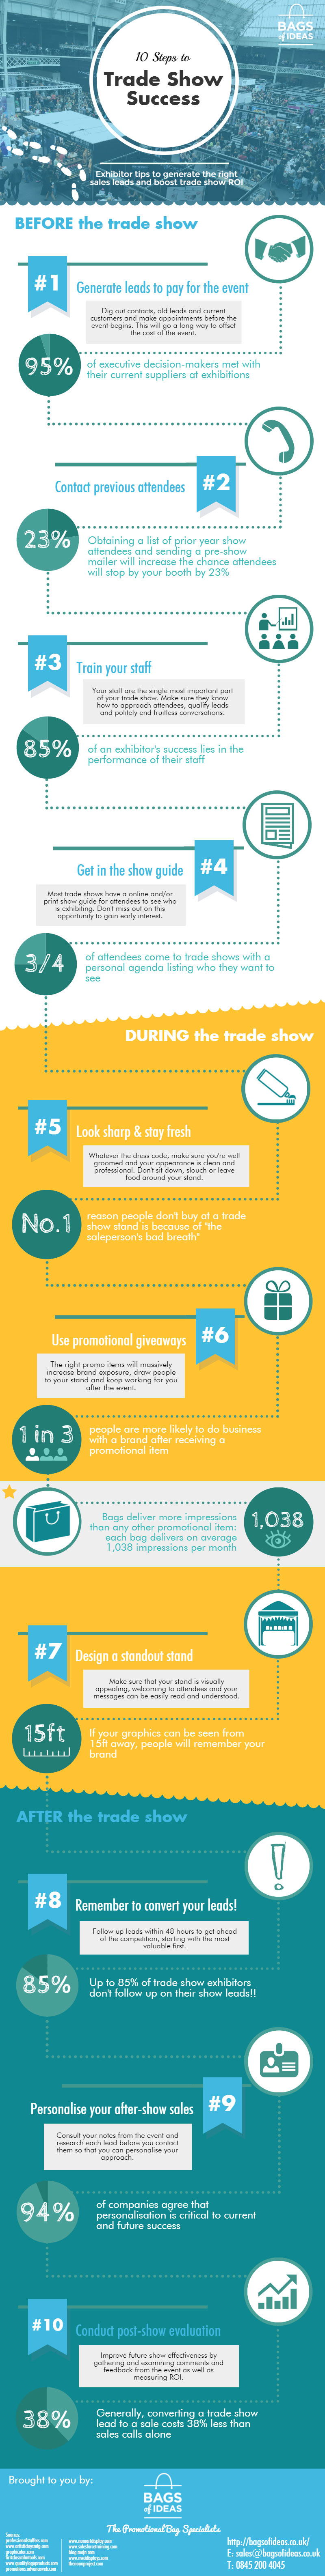 10 Steps to Trade Show Success Infographic